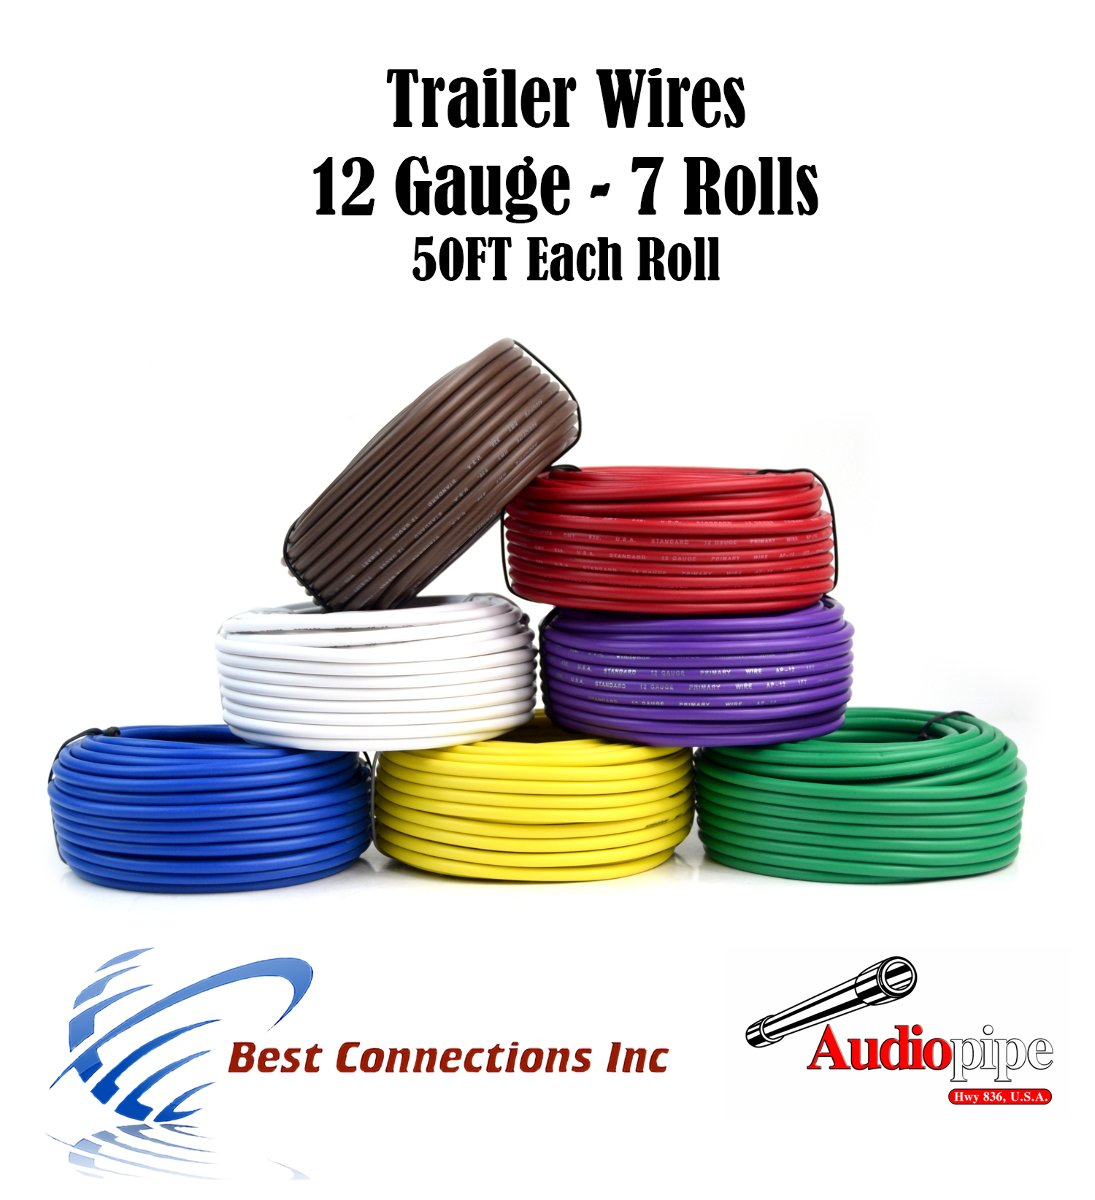 7 Way Trailer Wire Light Cable for Harness 50 FT Each Roll 12 Gauge 7 Colors by Audiopipe